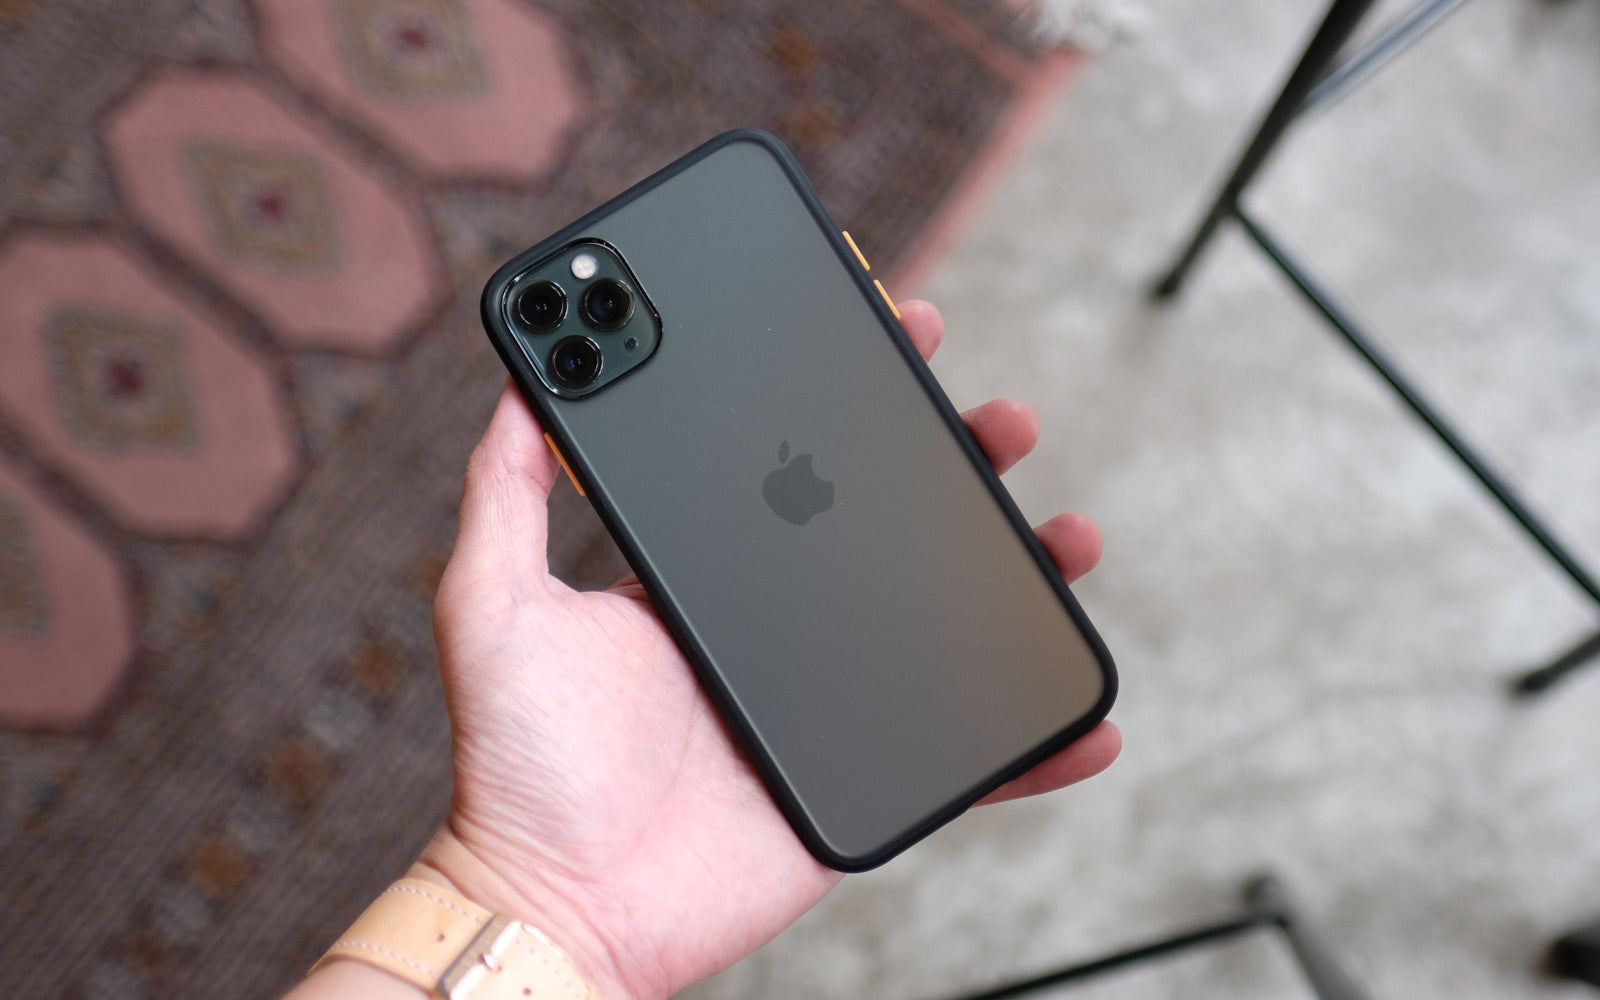 Bare Armour - Minimalist Shock Resistant Case for iPhone 11 Pro and 11 Pro Max - Branding-Free